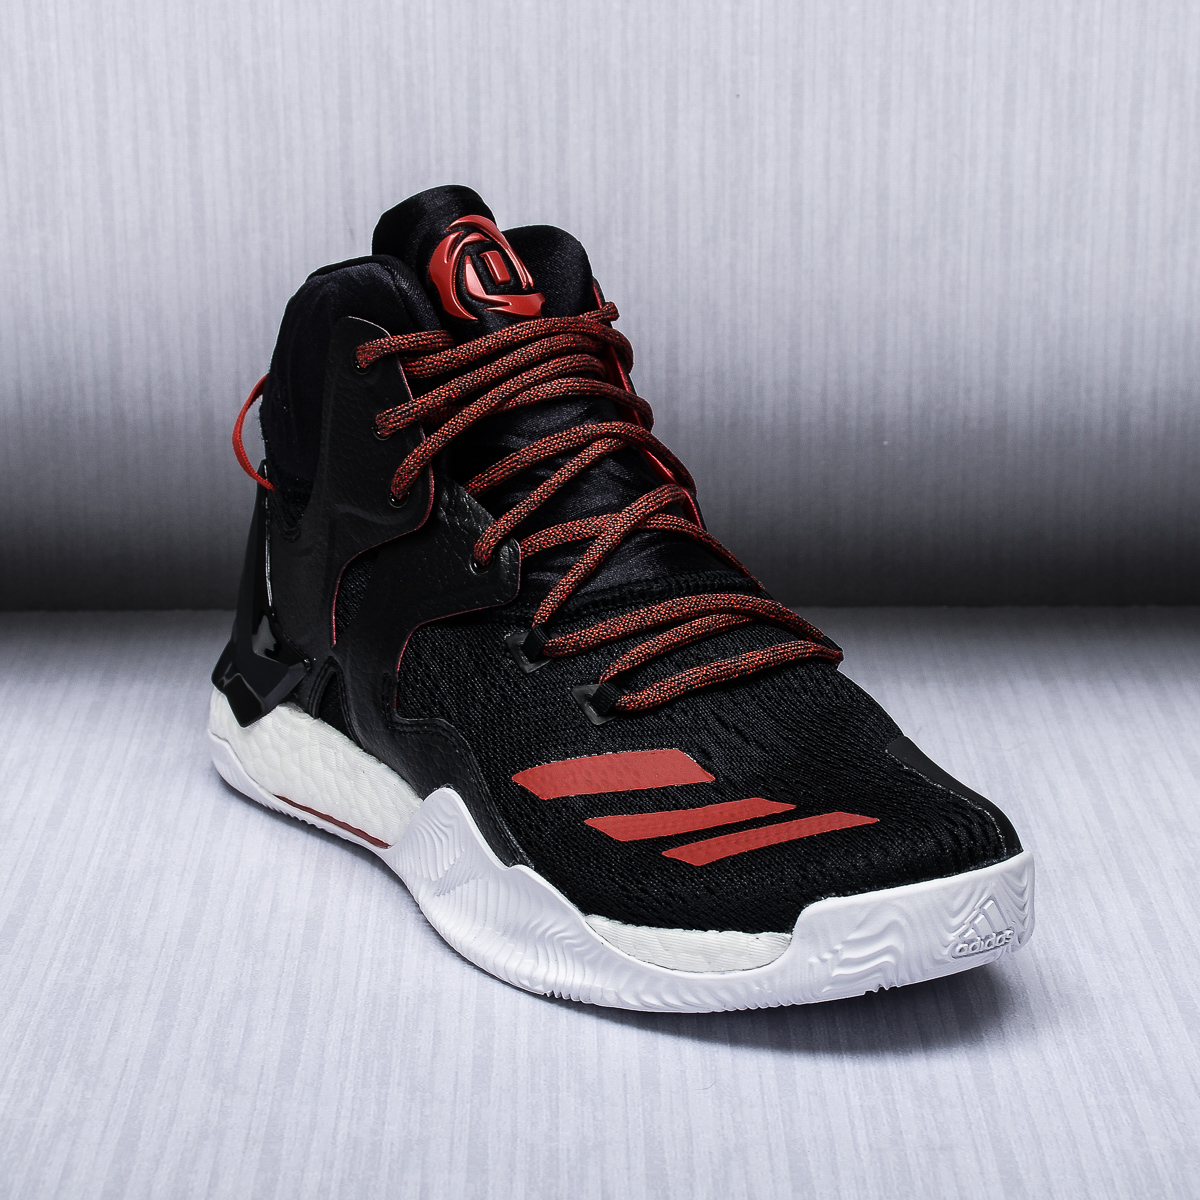 Derrick Rose Shoes Size